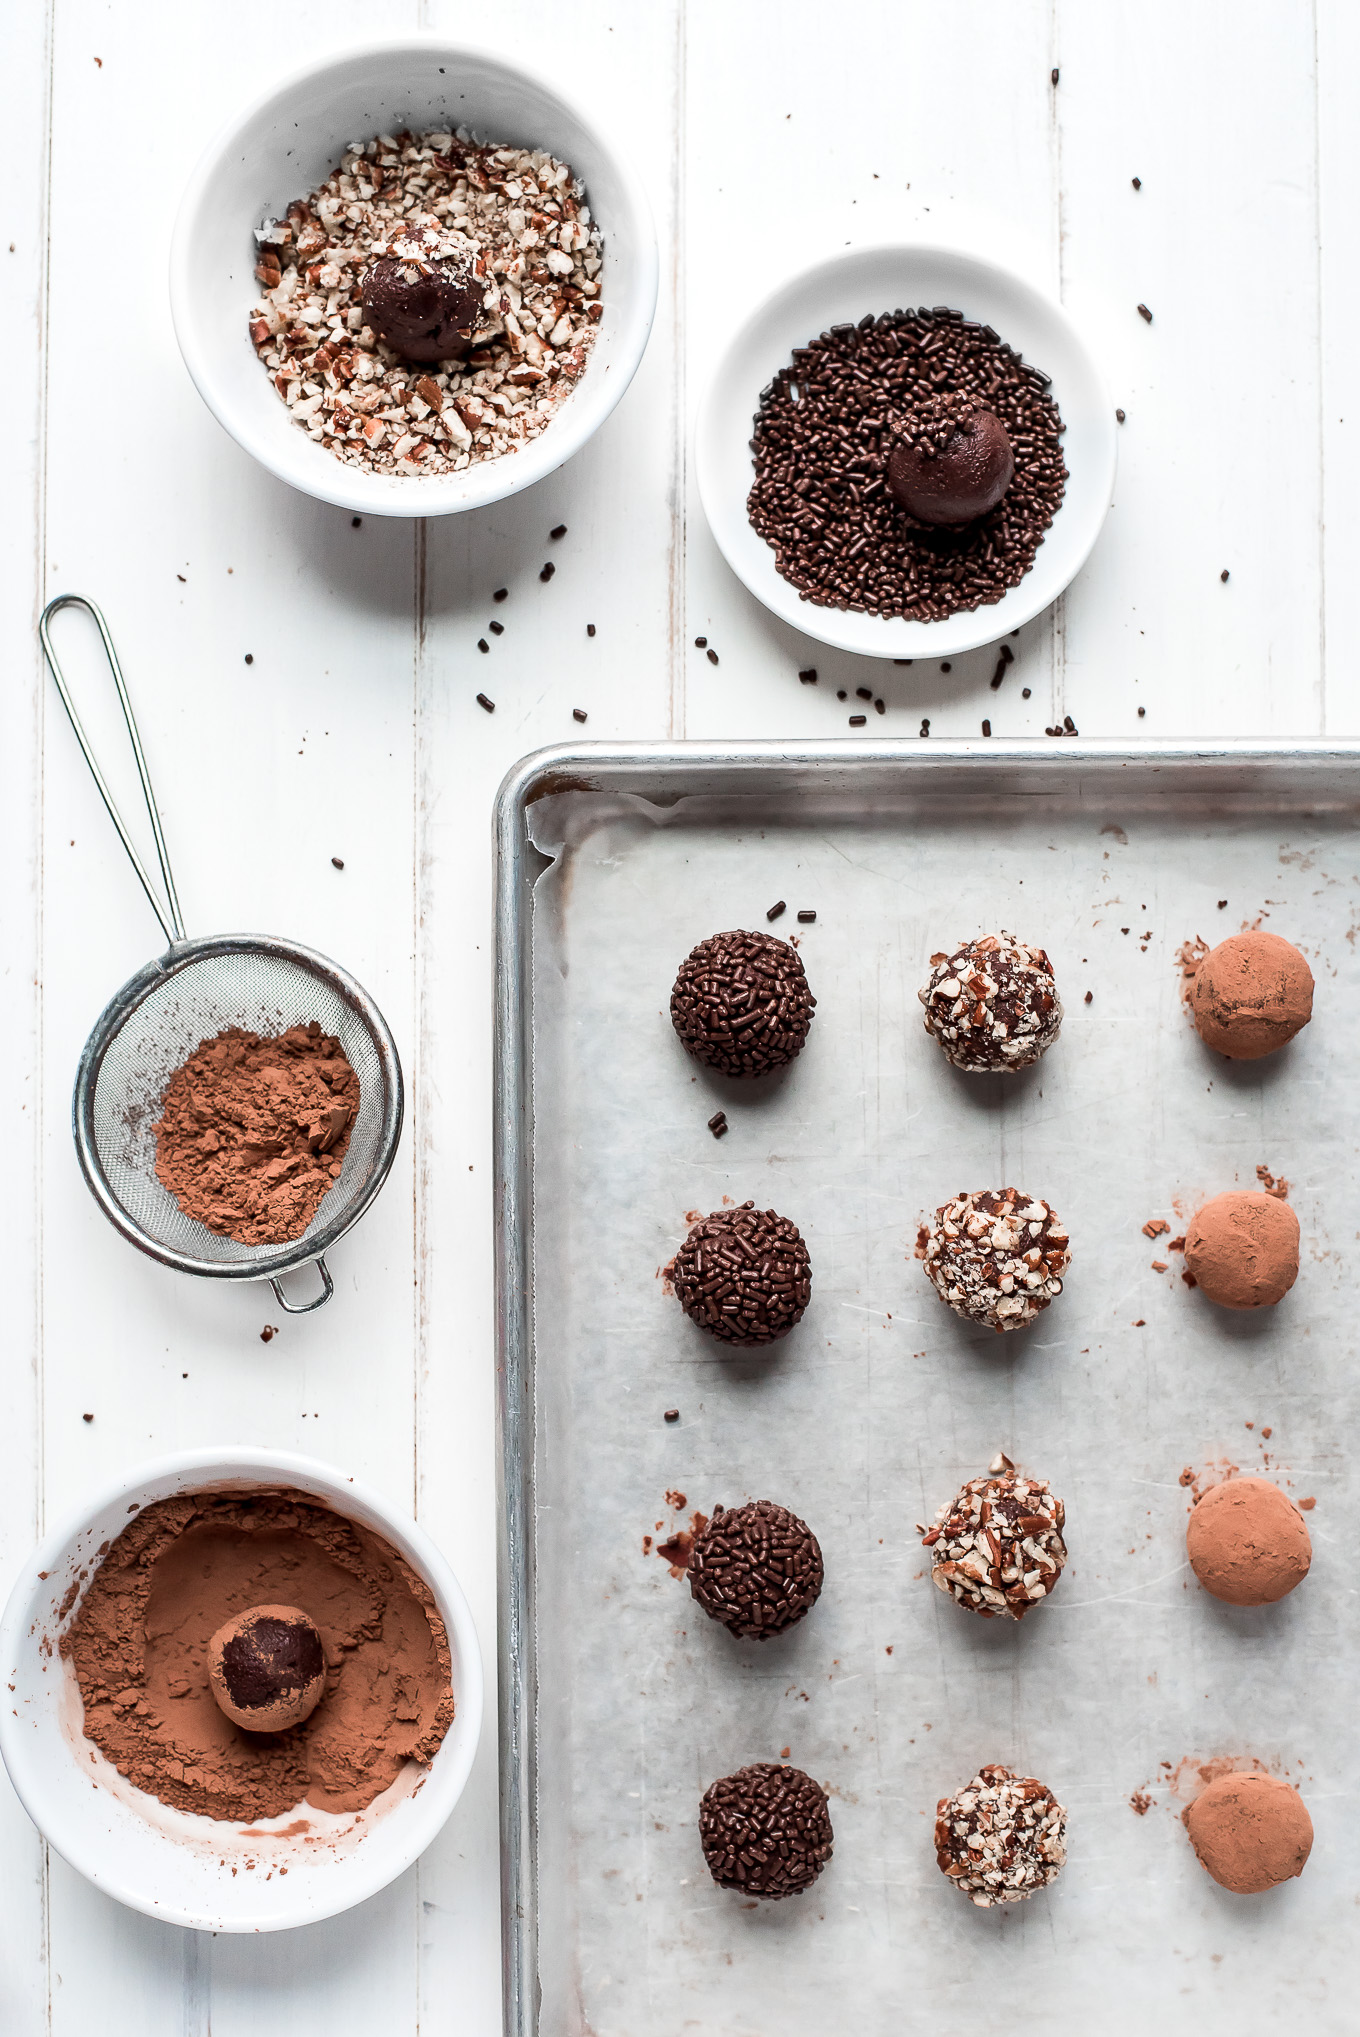 Chocolate Truffles on a baking sheet with bowls of sprinkles, chopped pecans, and cocoa powder for rolling them in.